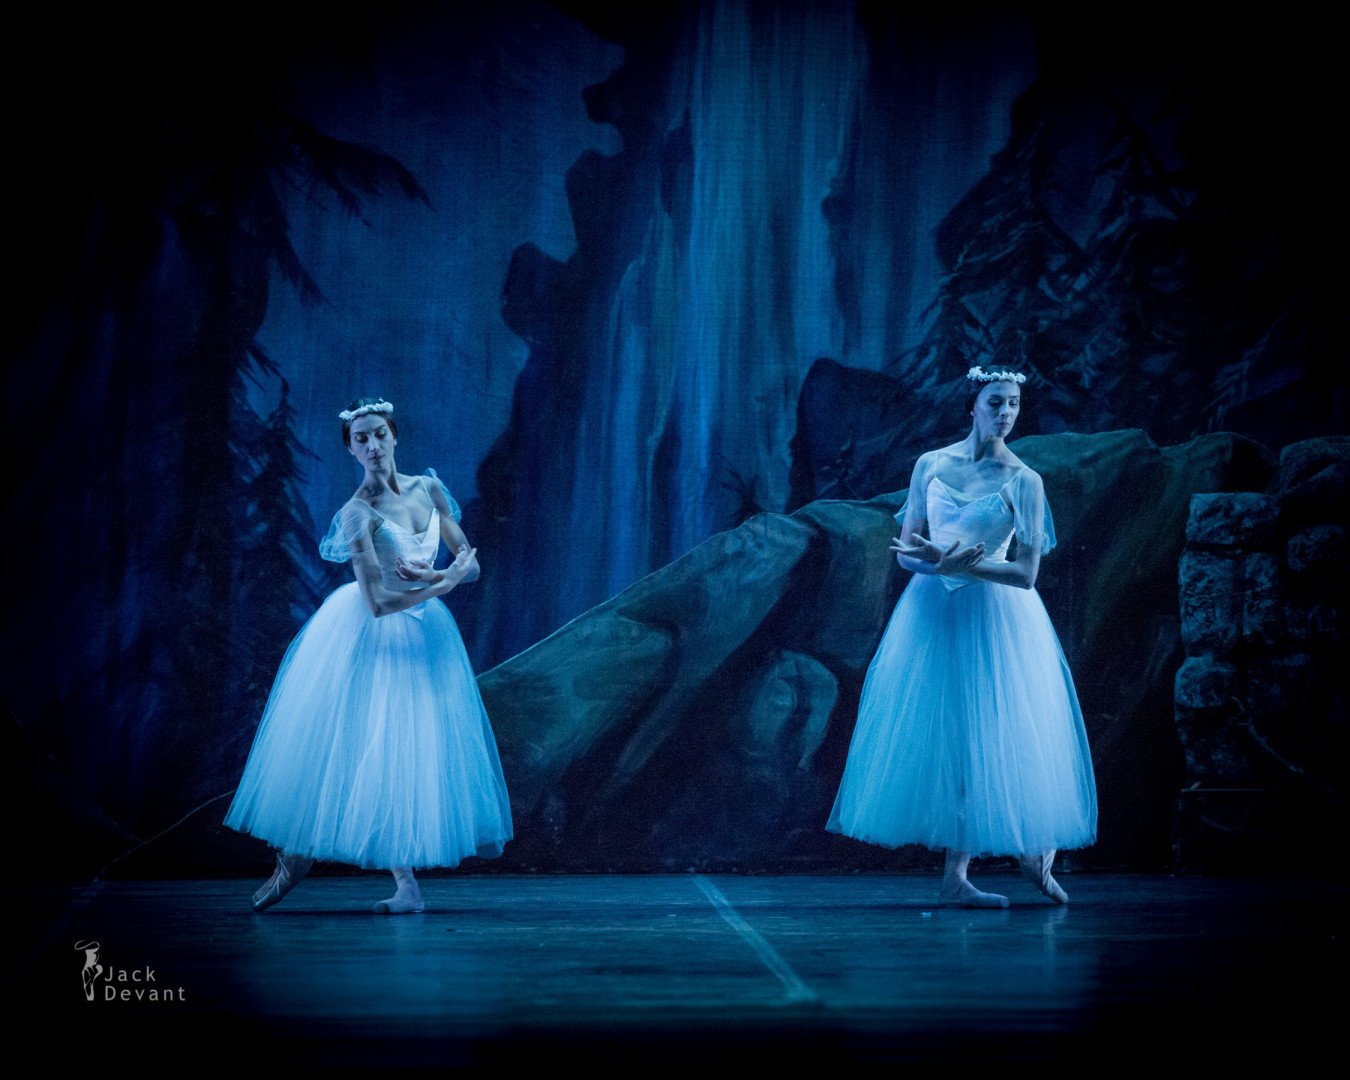 Annalina Nuzzo and Anna Chiara Amirante as Due Willi